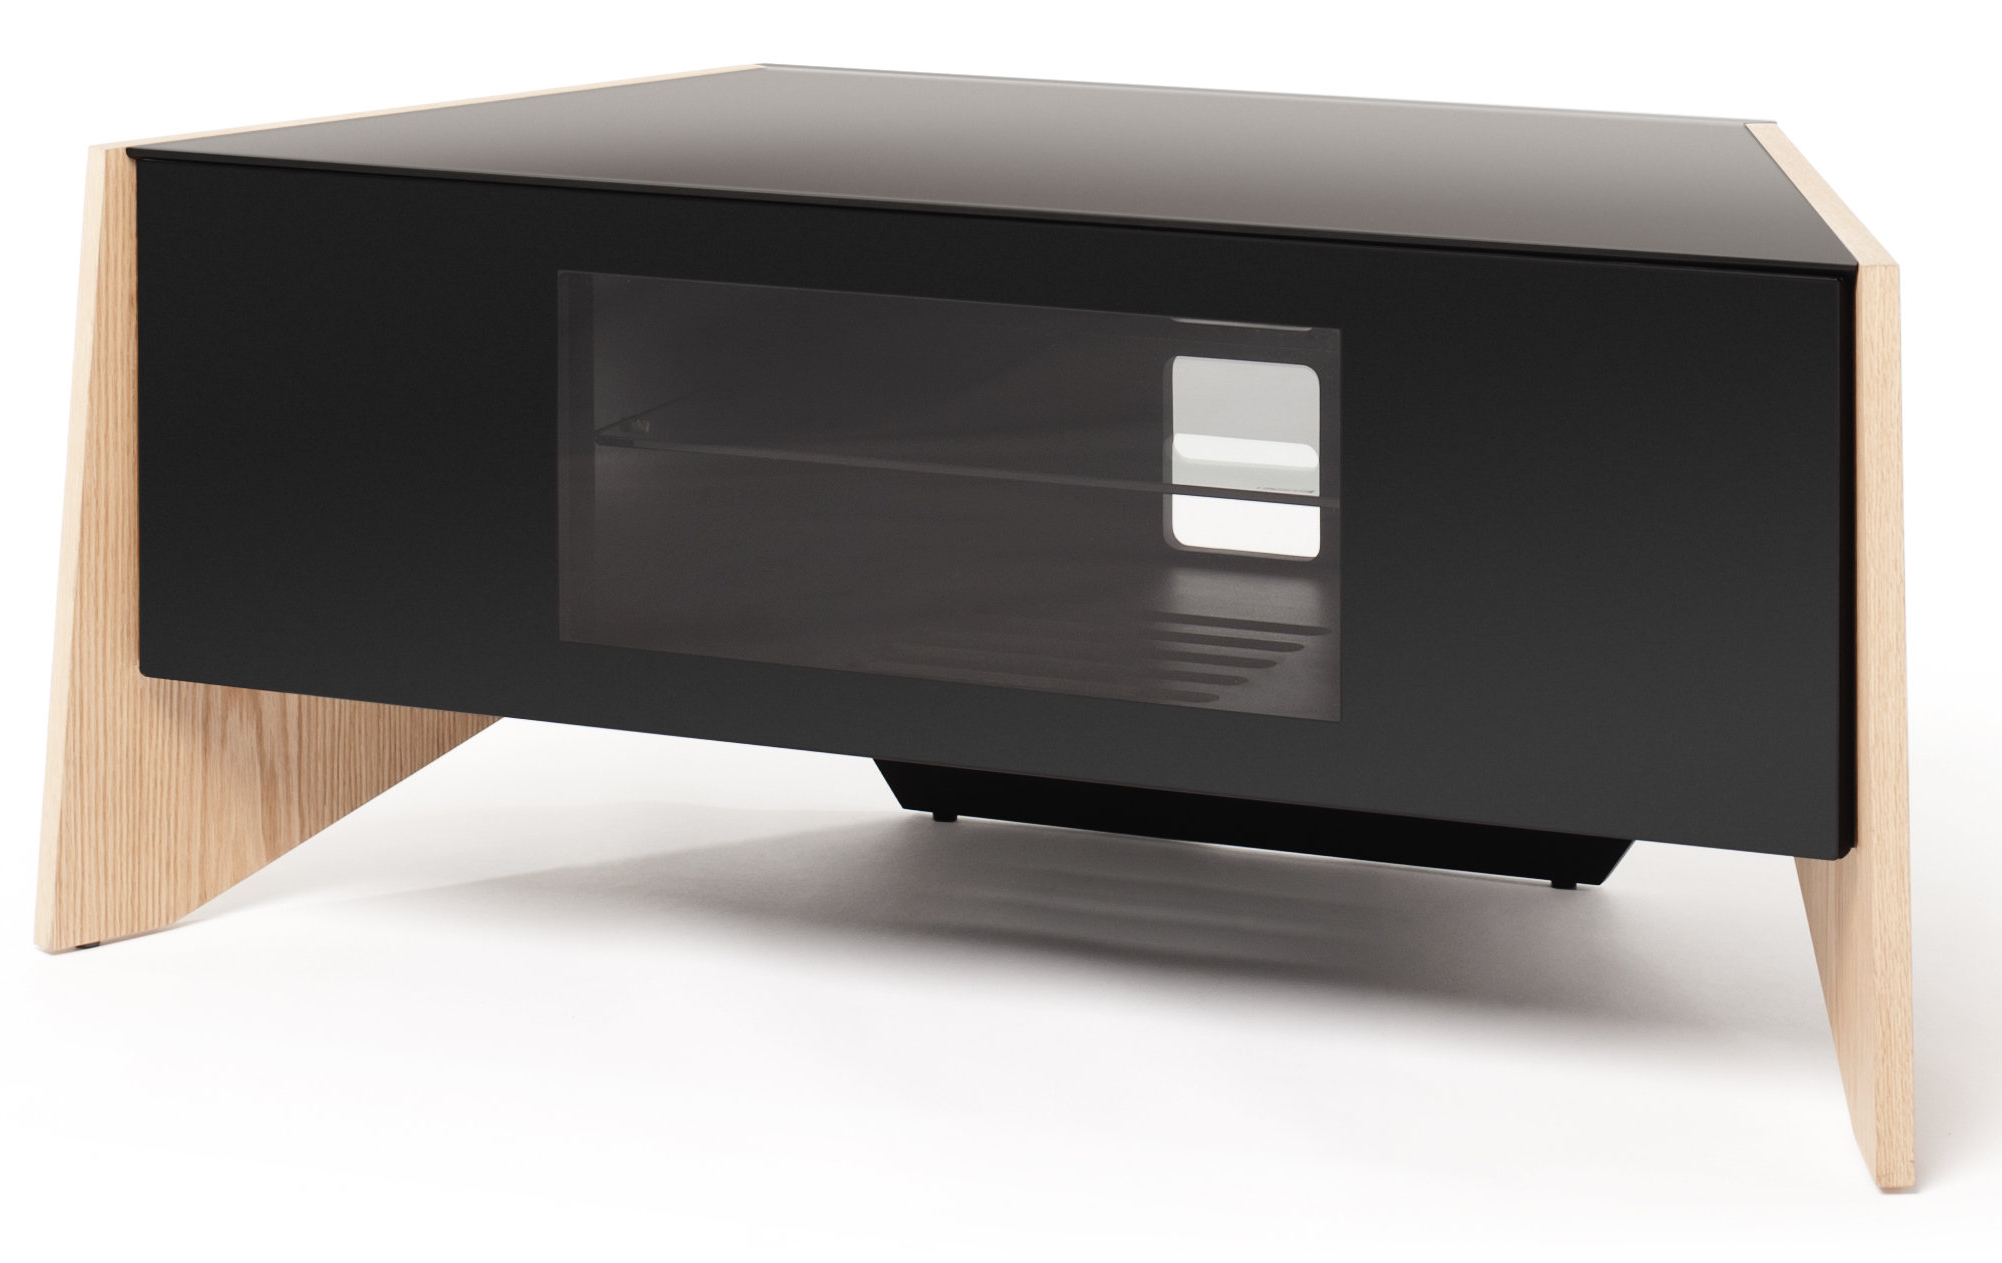 Wayfair.co.uk Throughout Most Recent Jaxon 65 Inch Tv Stands (Gallery 17 of 20)